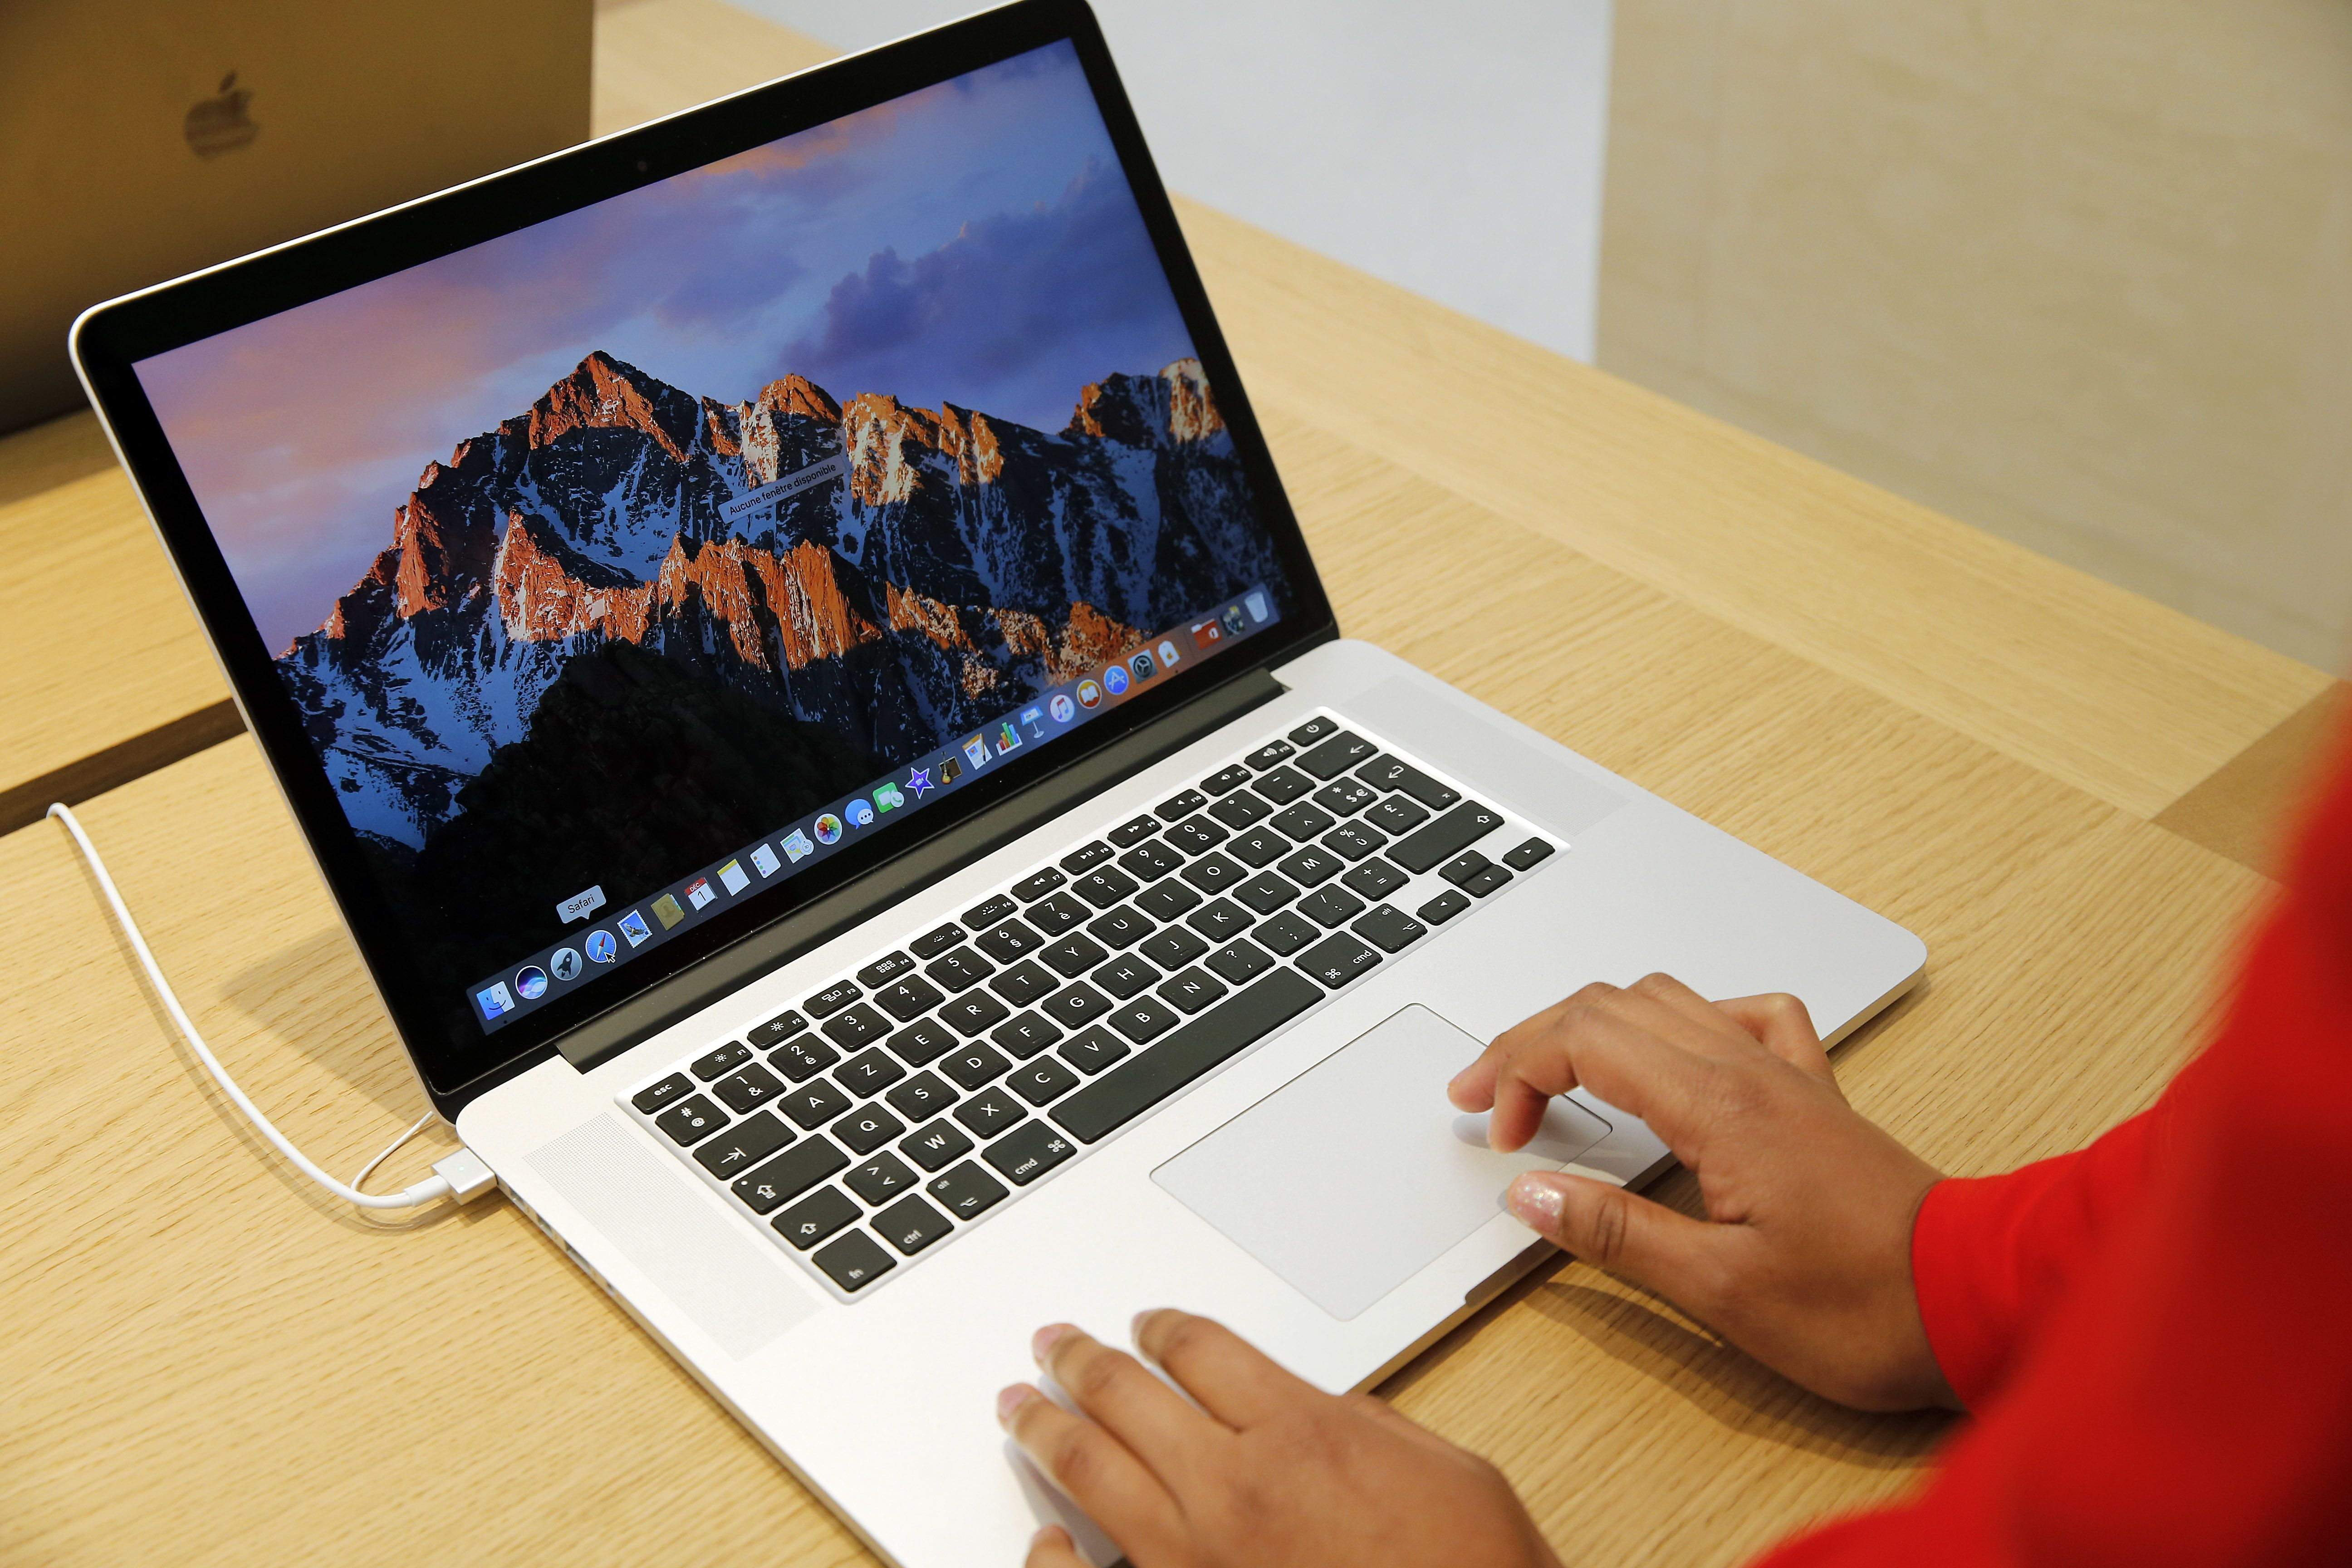 Apple recalls some MacBook Pro models due to 'fire safety risk'